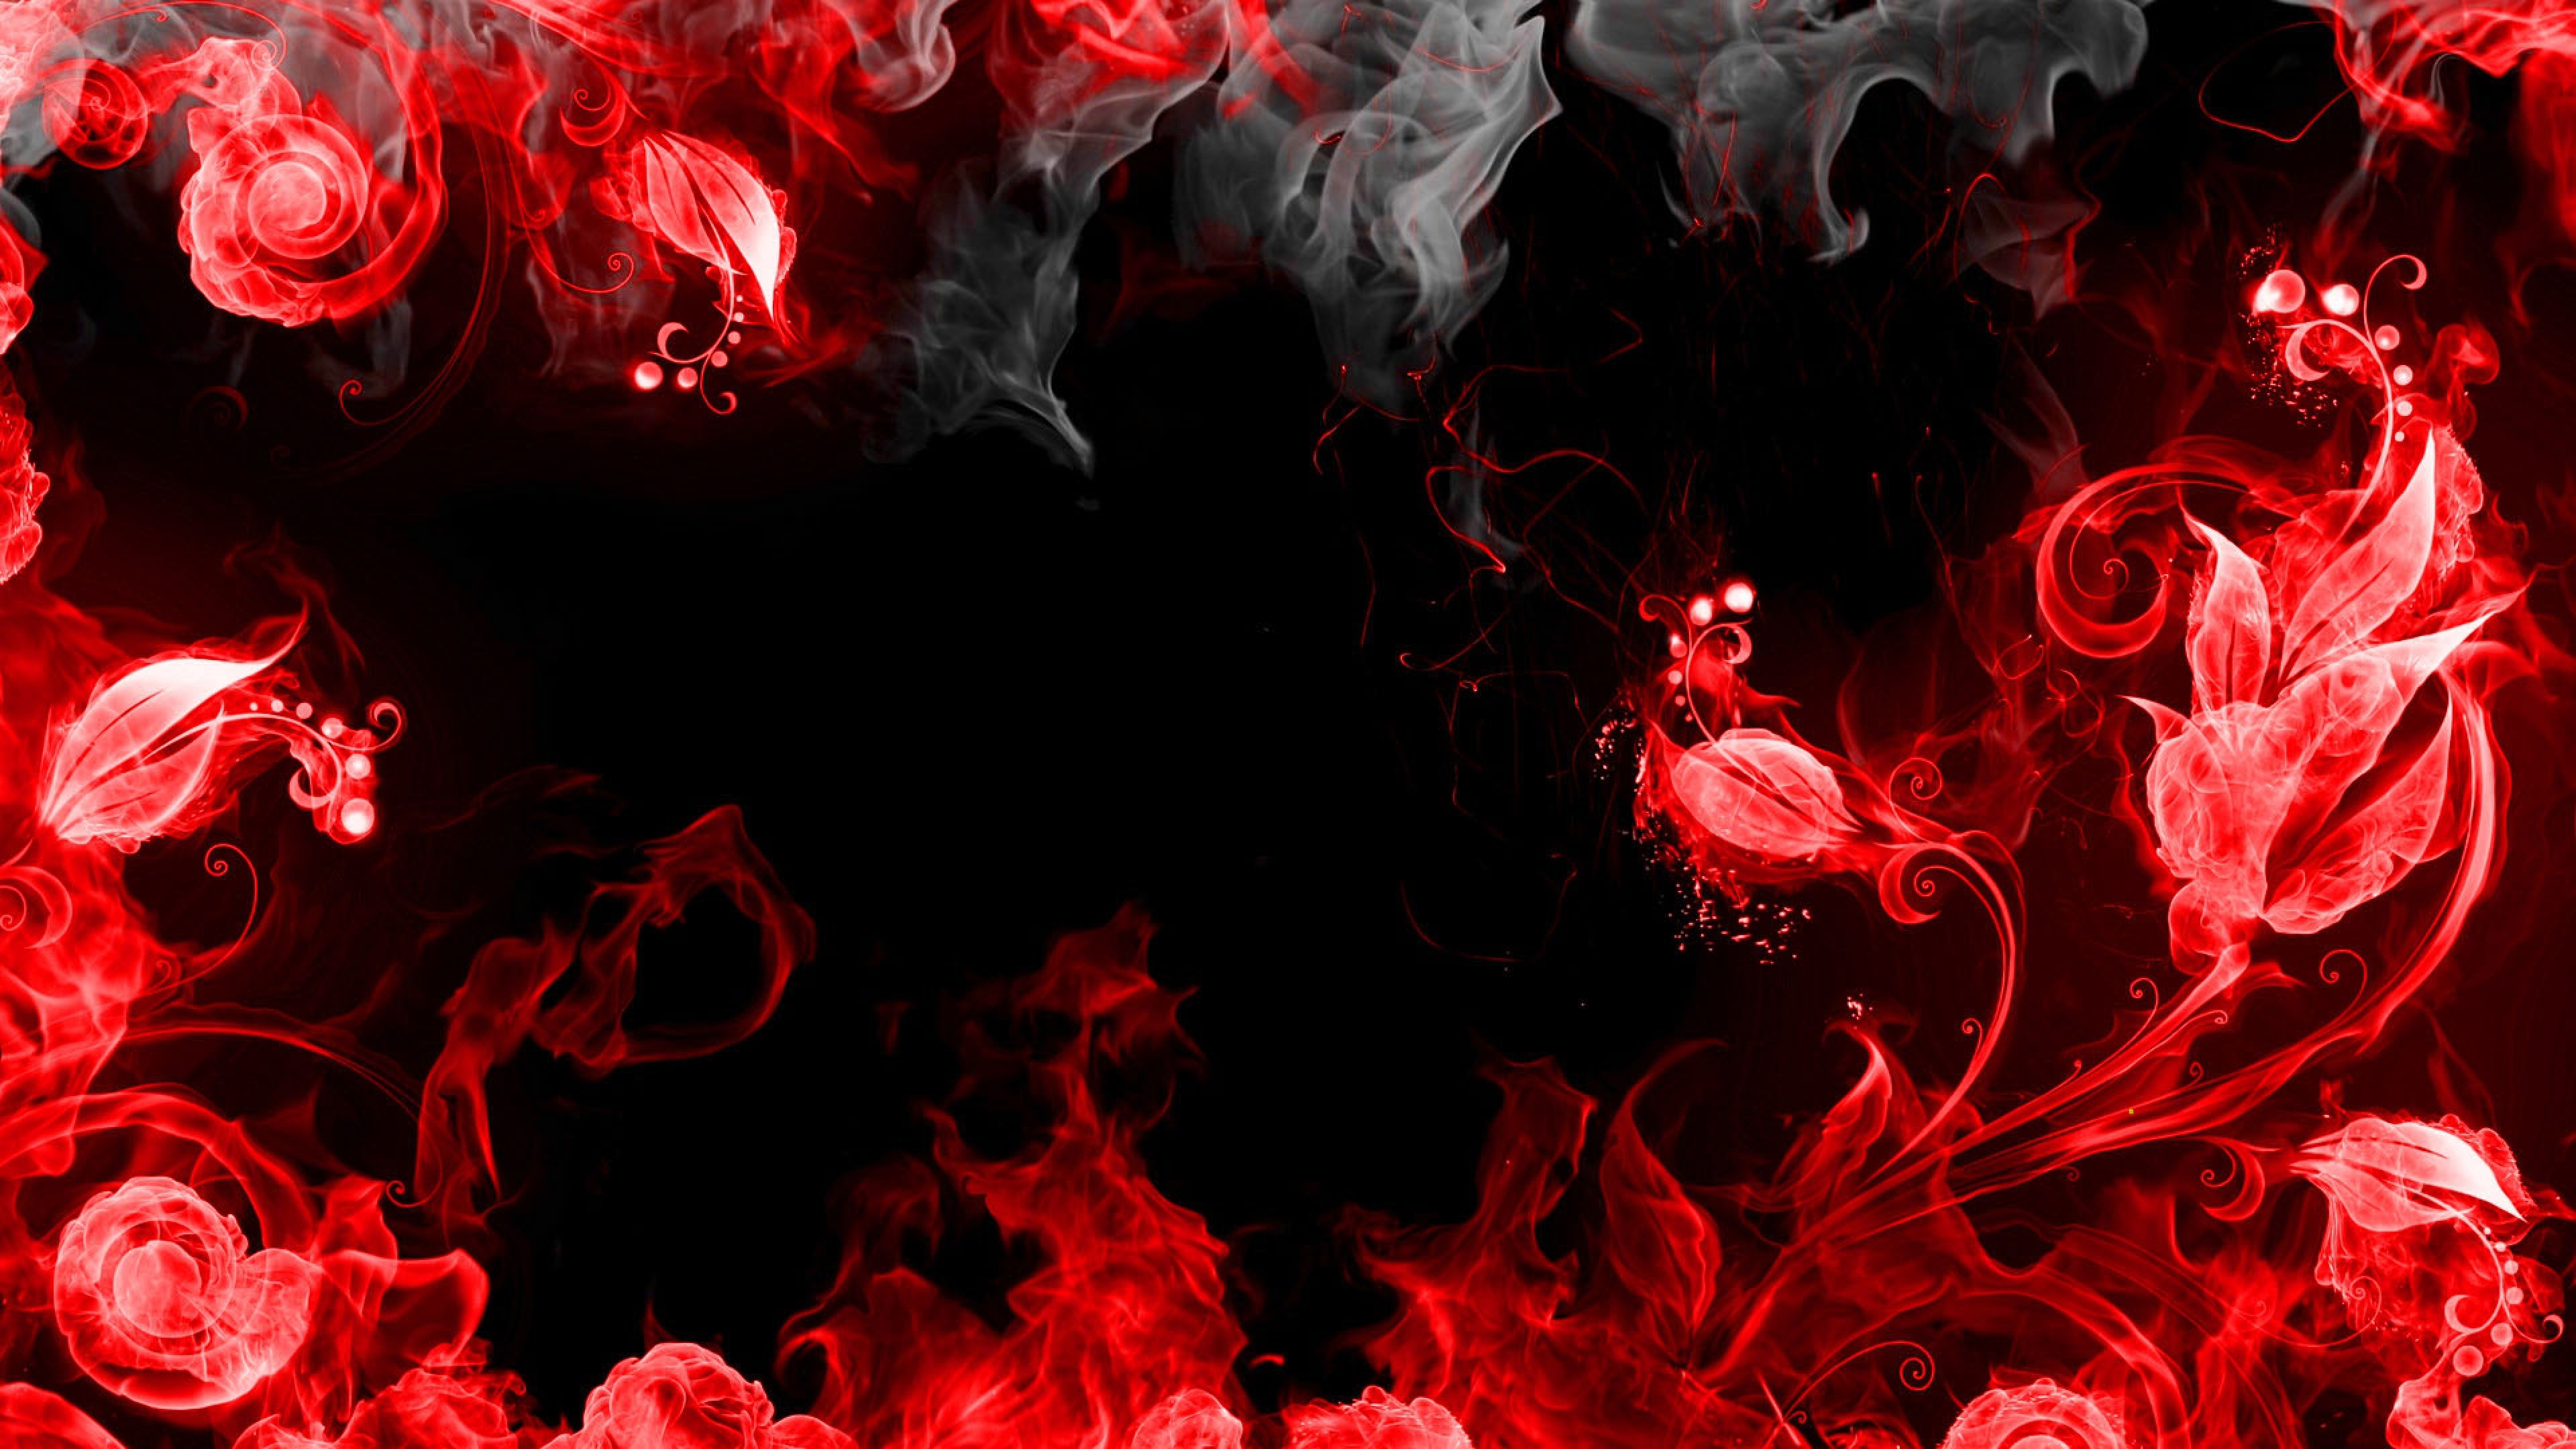 Download Wallpaper 3840x2160 abstraction red smoke black 4K Ultra 3840x2160